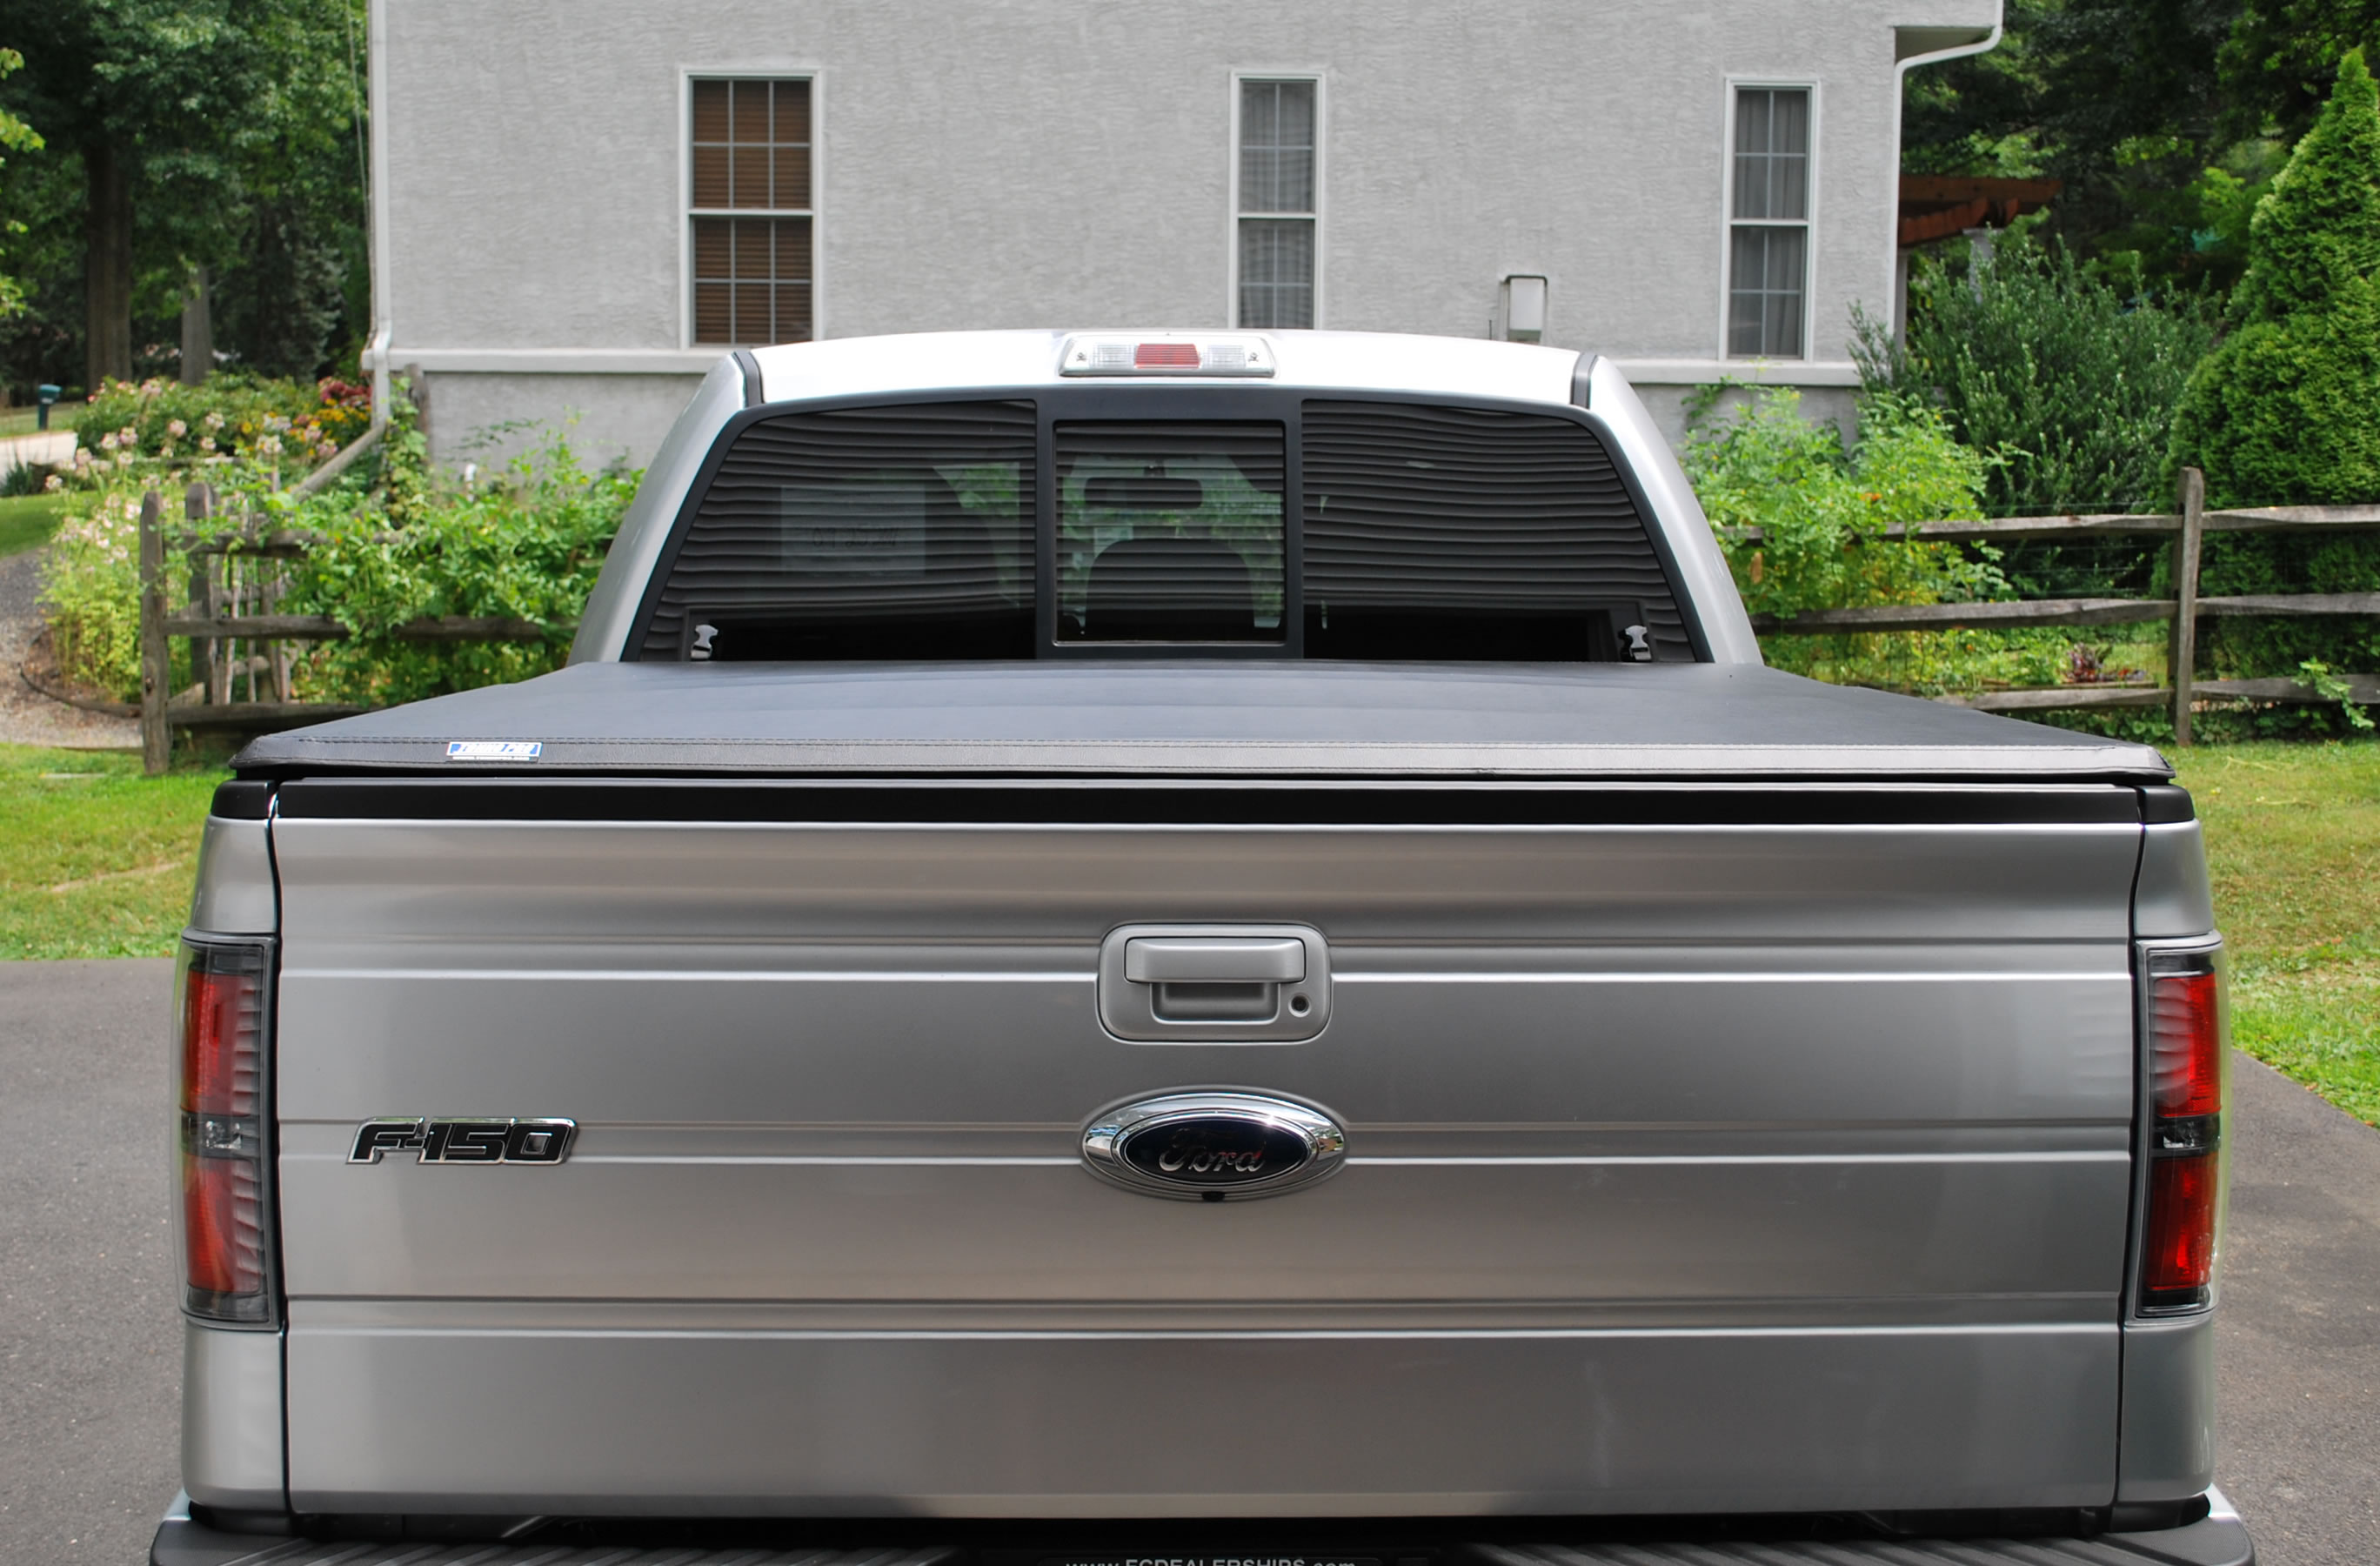 F150 Bed Covers